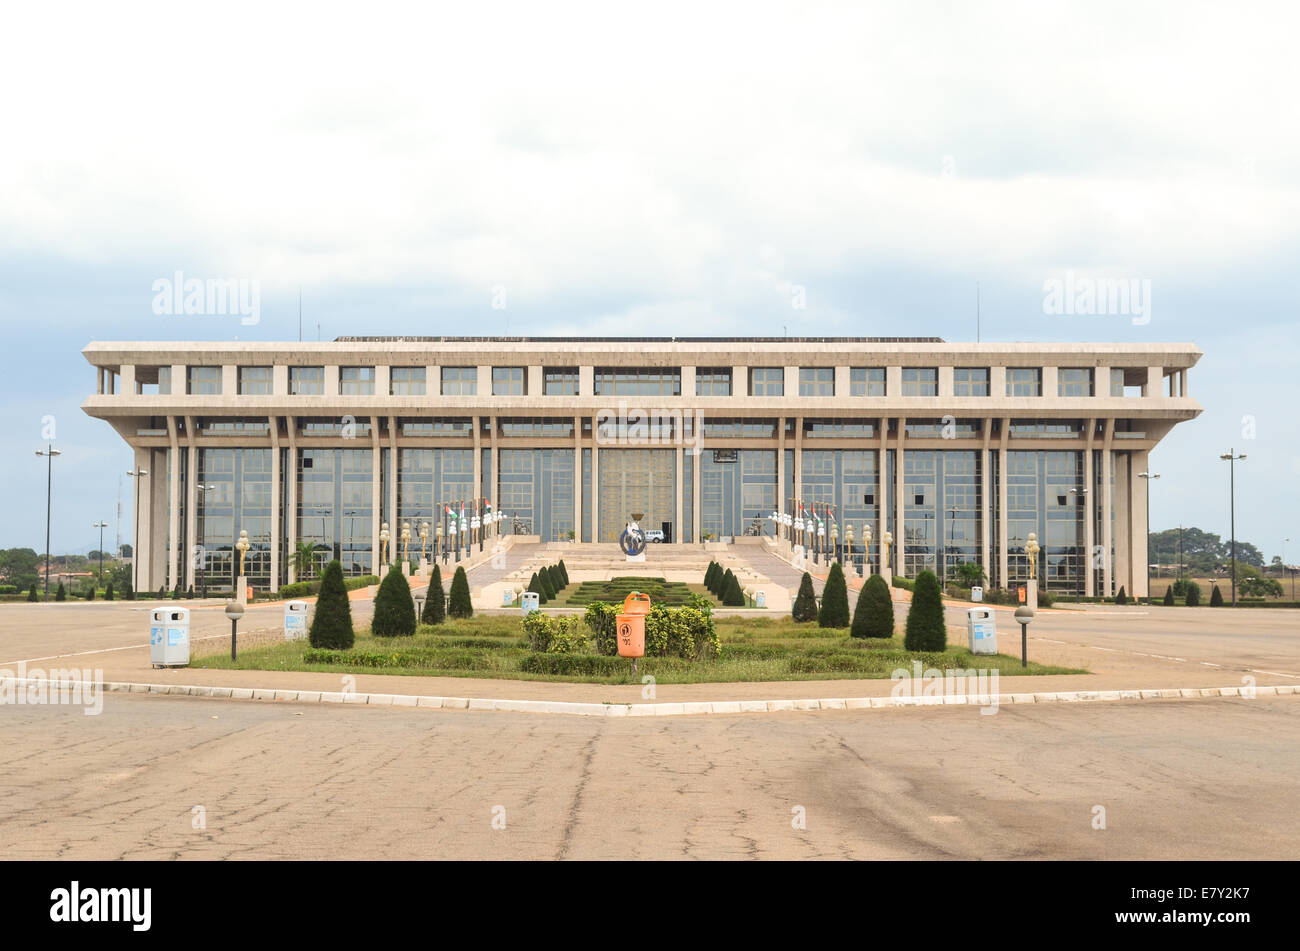 Building of the Fondation Félix Houphouet-Boigny in Yamoussoukro, Côte d'Ivoire (Ivory Coast), a research - Stock Image